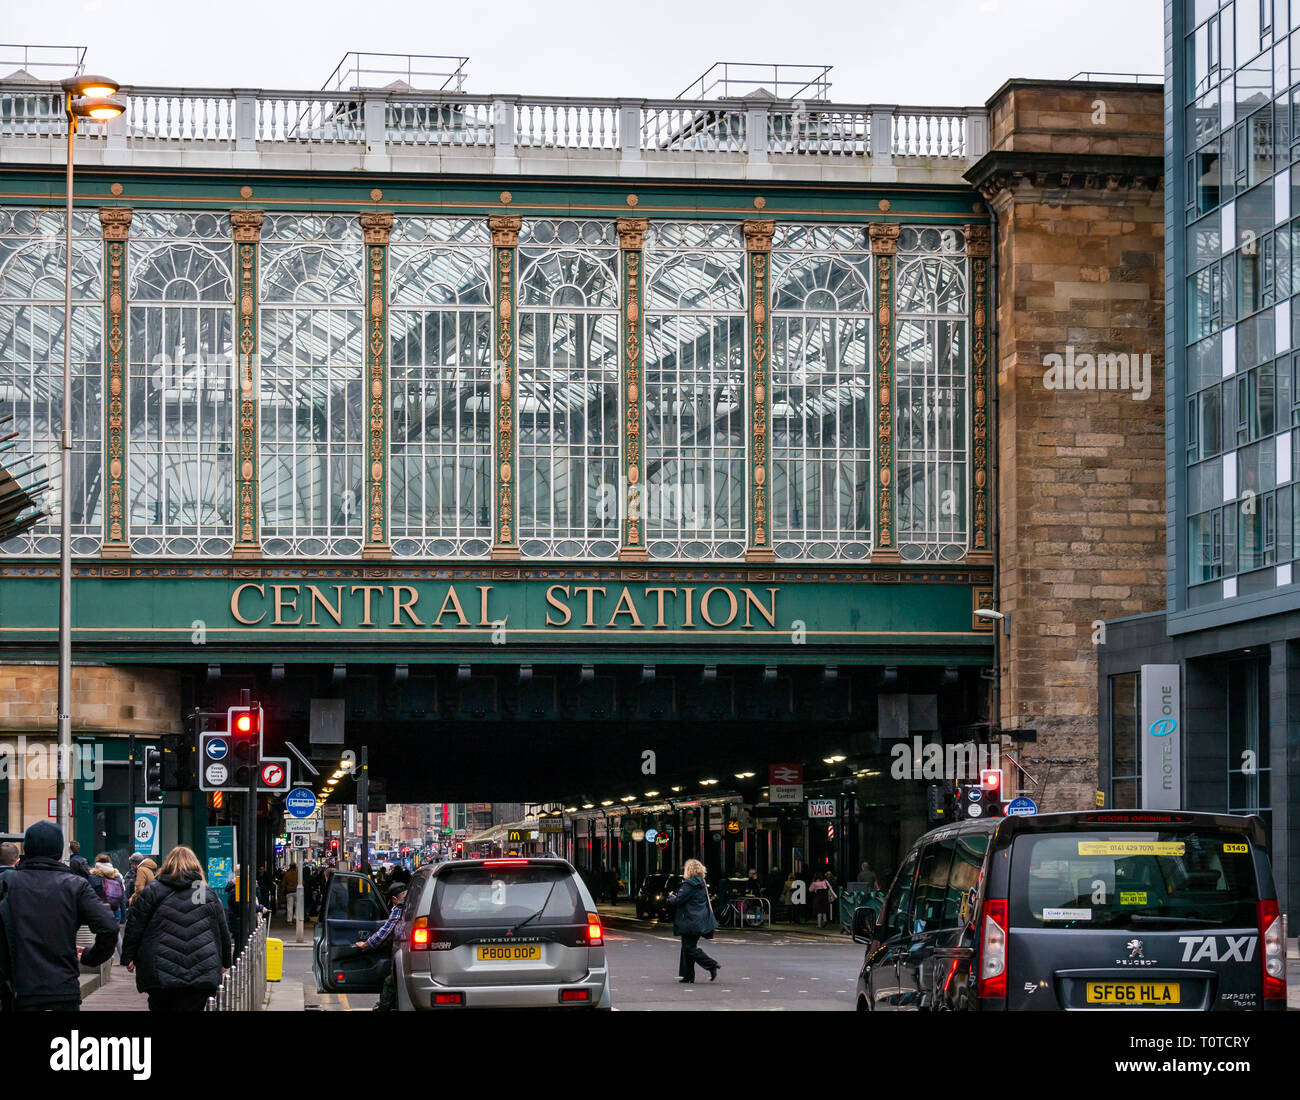 Ornate Victorian glass structure, Glasgow Central Statiion, Argyle Street, Scotland, UK - Stock Image